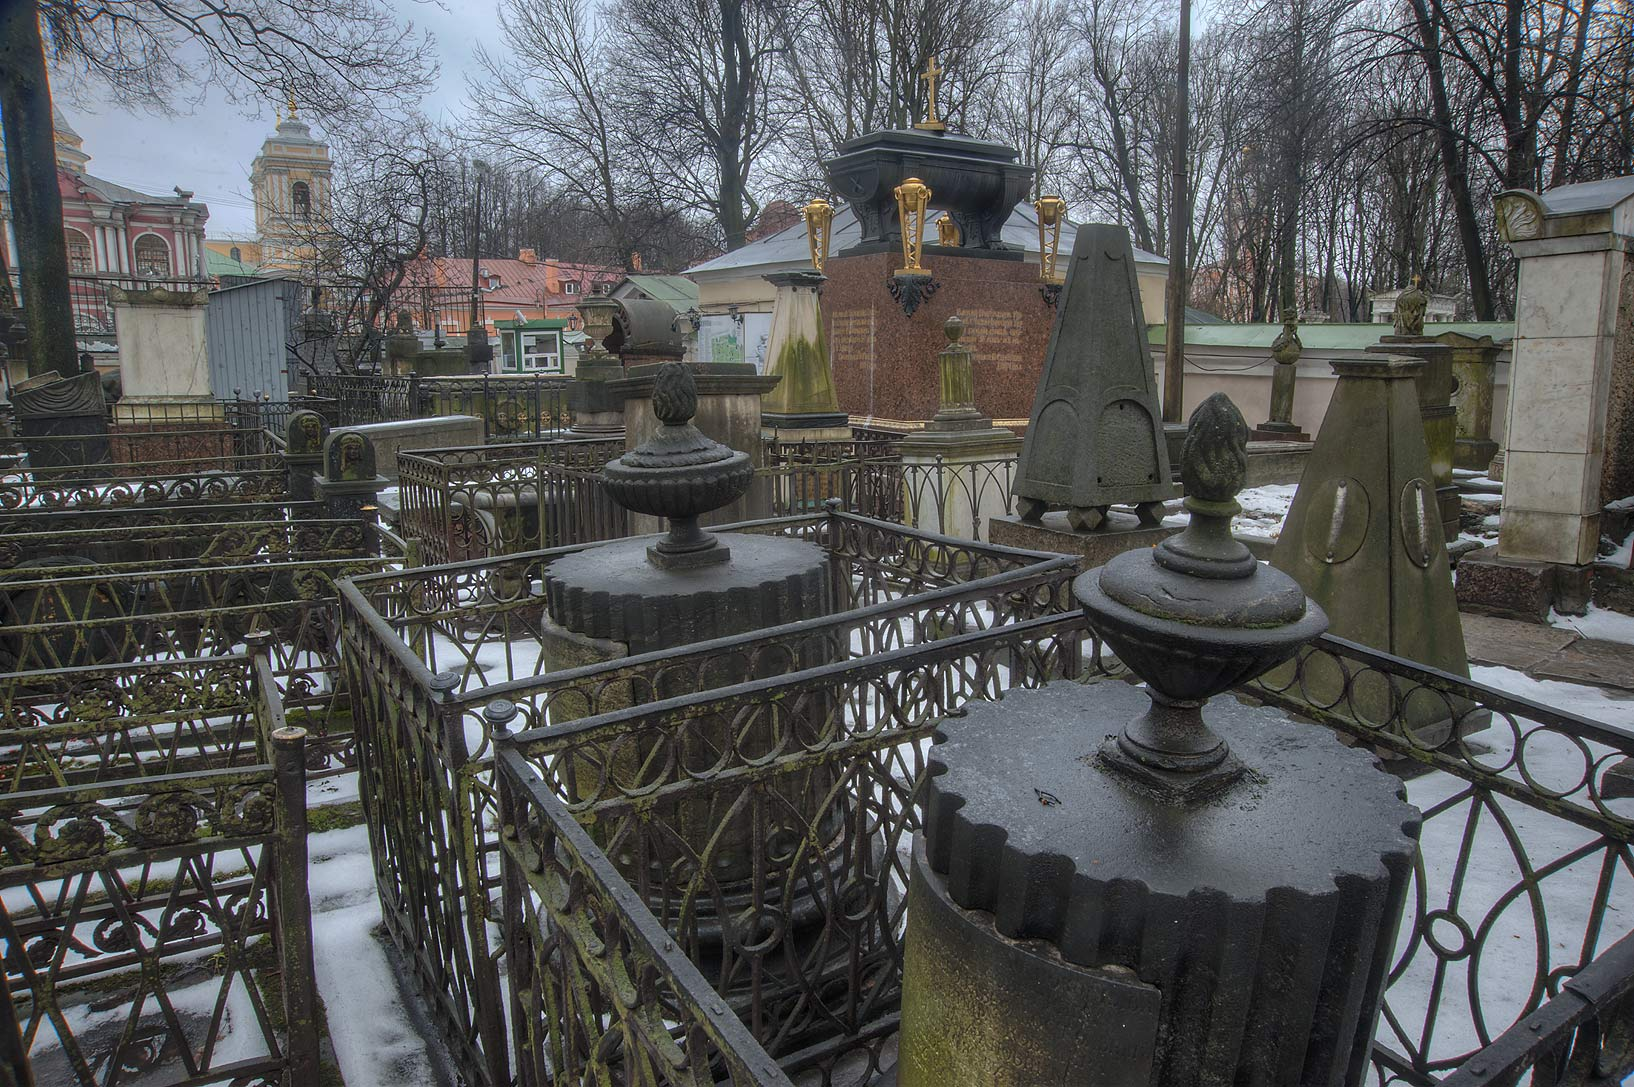 Tombscape of Necropolis of Alexander Nevsky Lavra...Cemetery). St.Petersburg, Russia